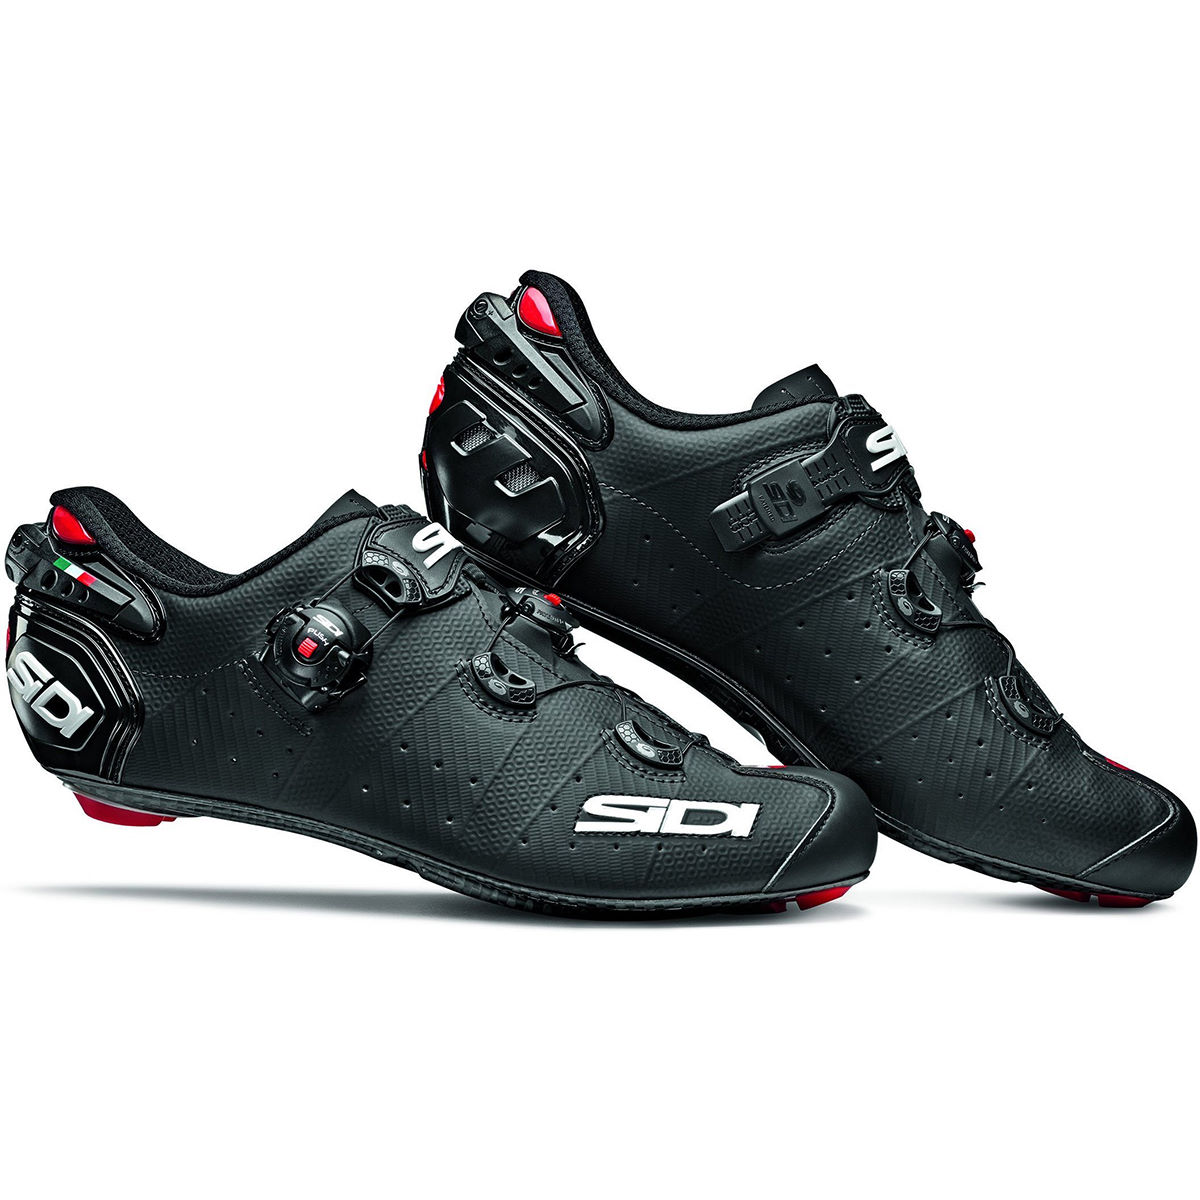 ComprarZapatillas de carbono de carretera Sidi Wire 2 Carbon Matt - Zapatillas de ciclismo